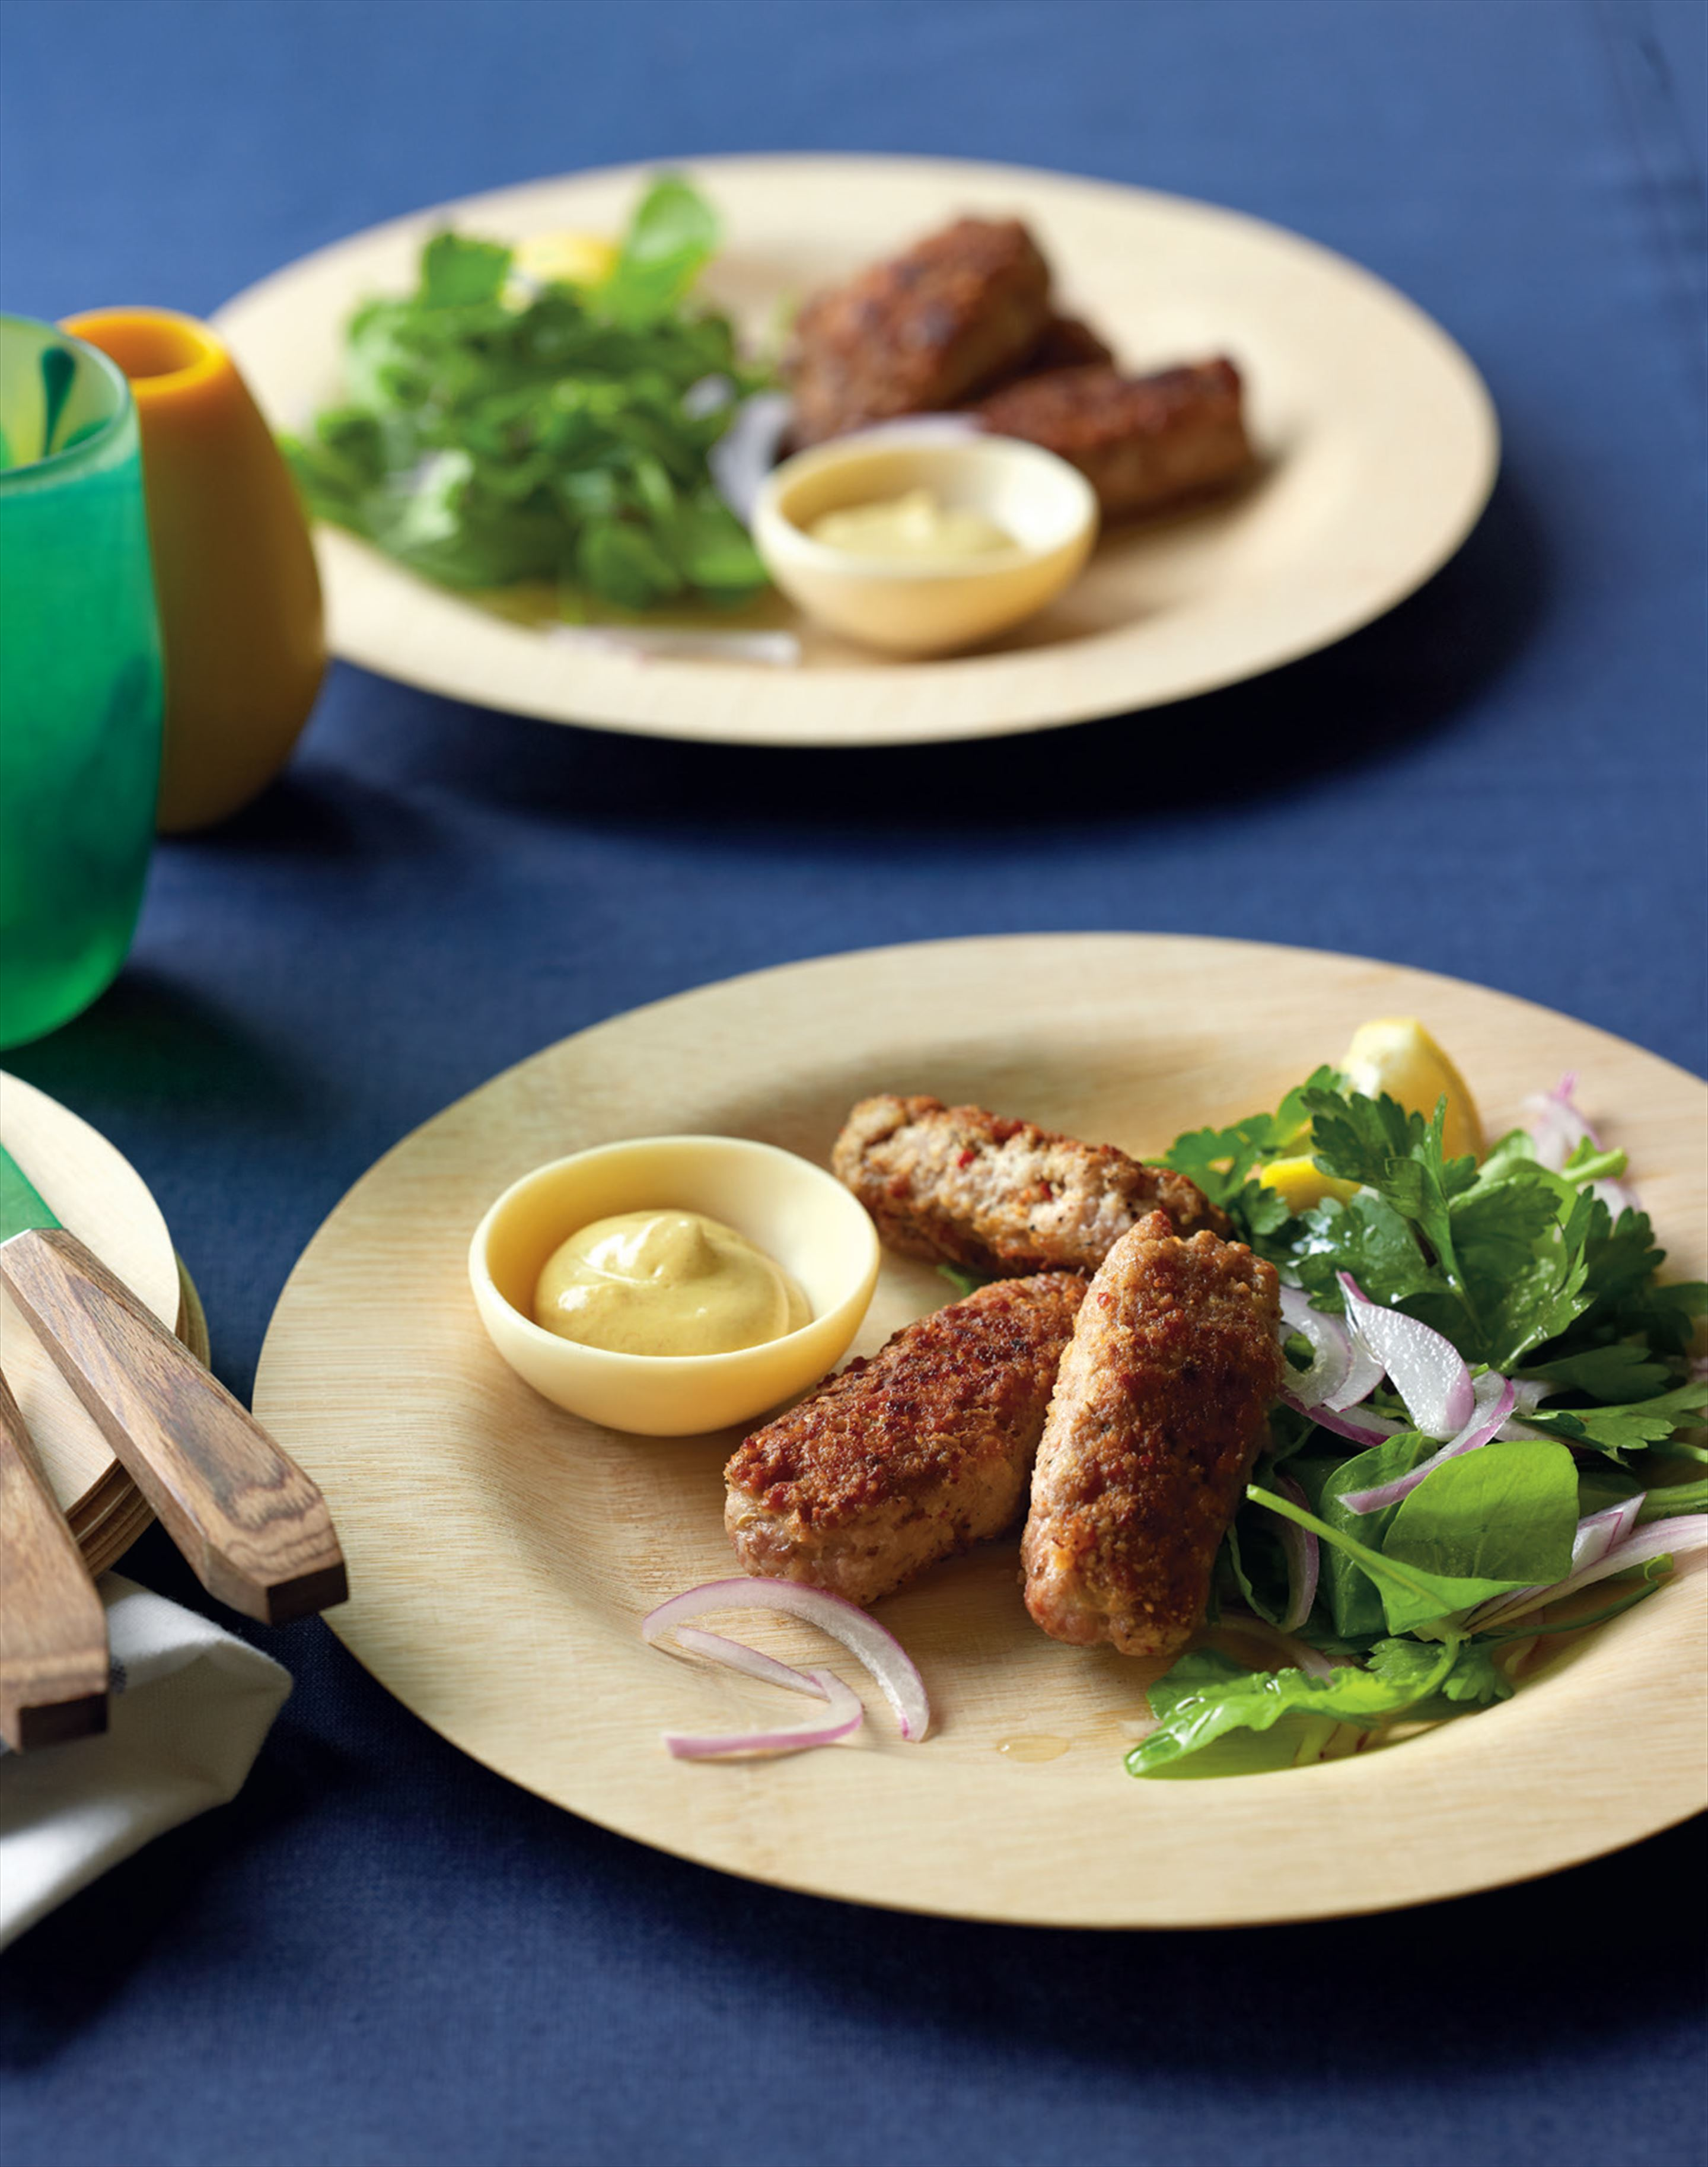 Pork cevapcici and mustard pots with rocket, parsley and red onion salad